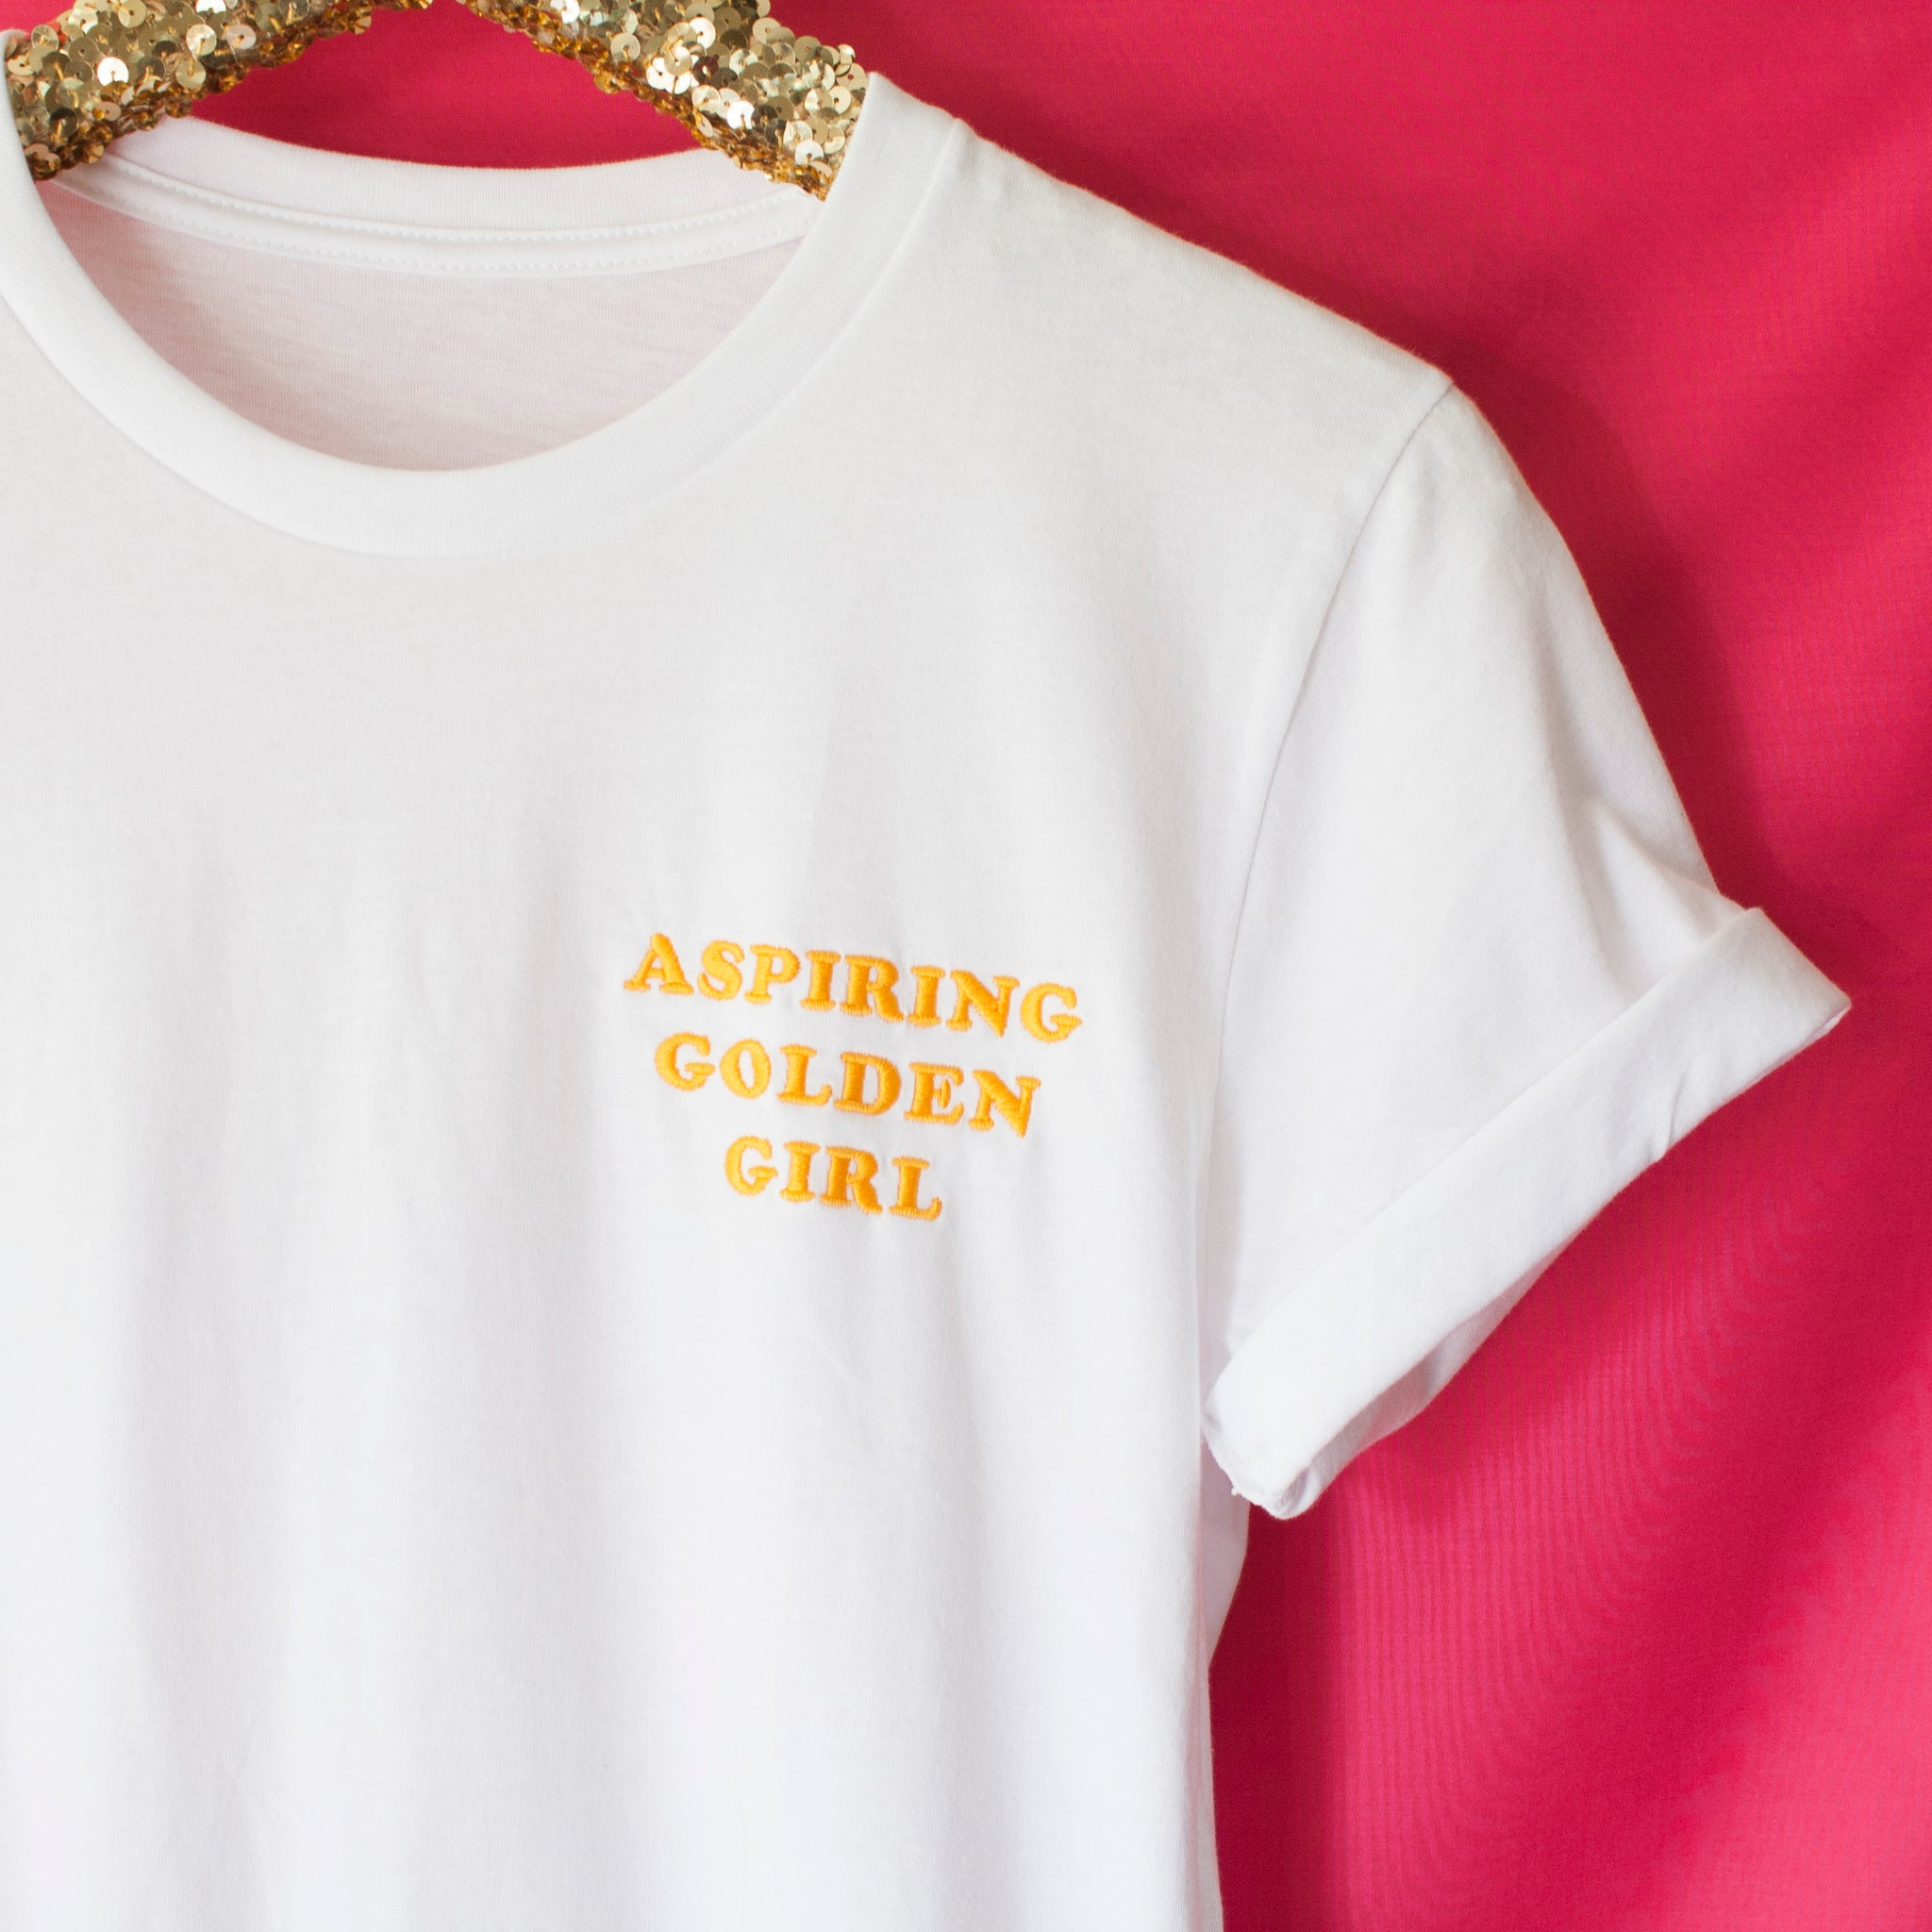 Aspiring Golden Girl - Unisex Tee